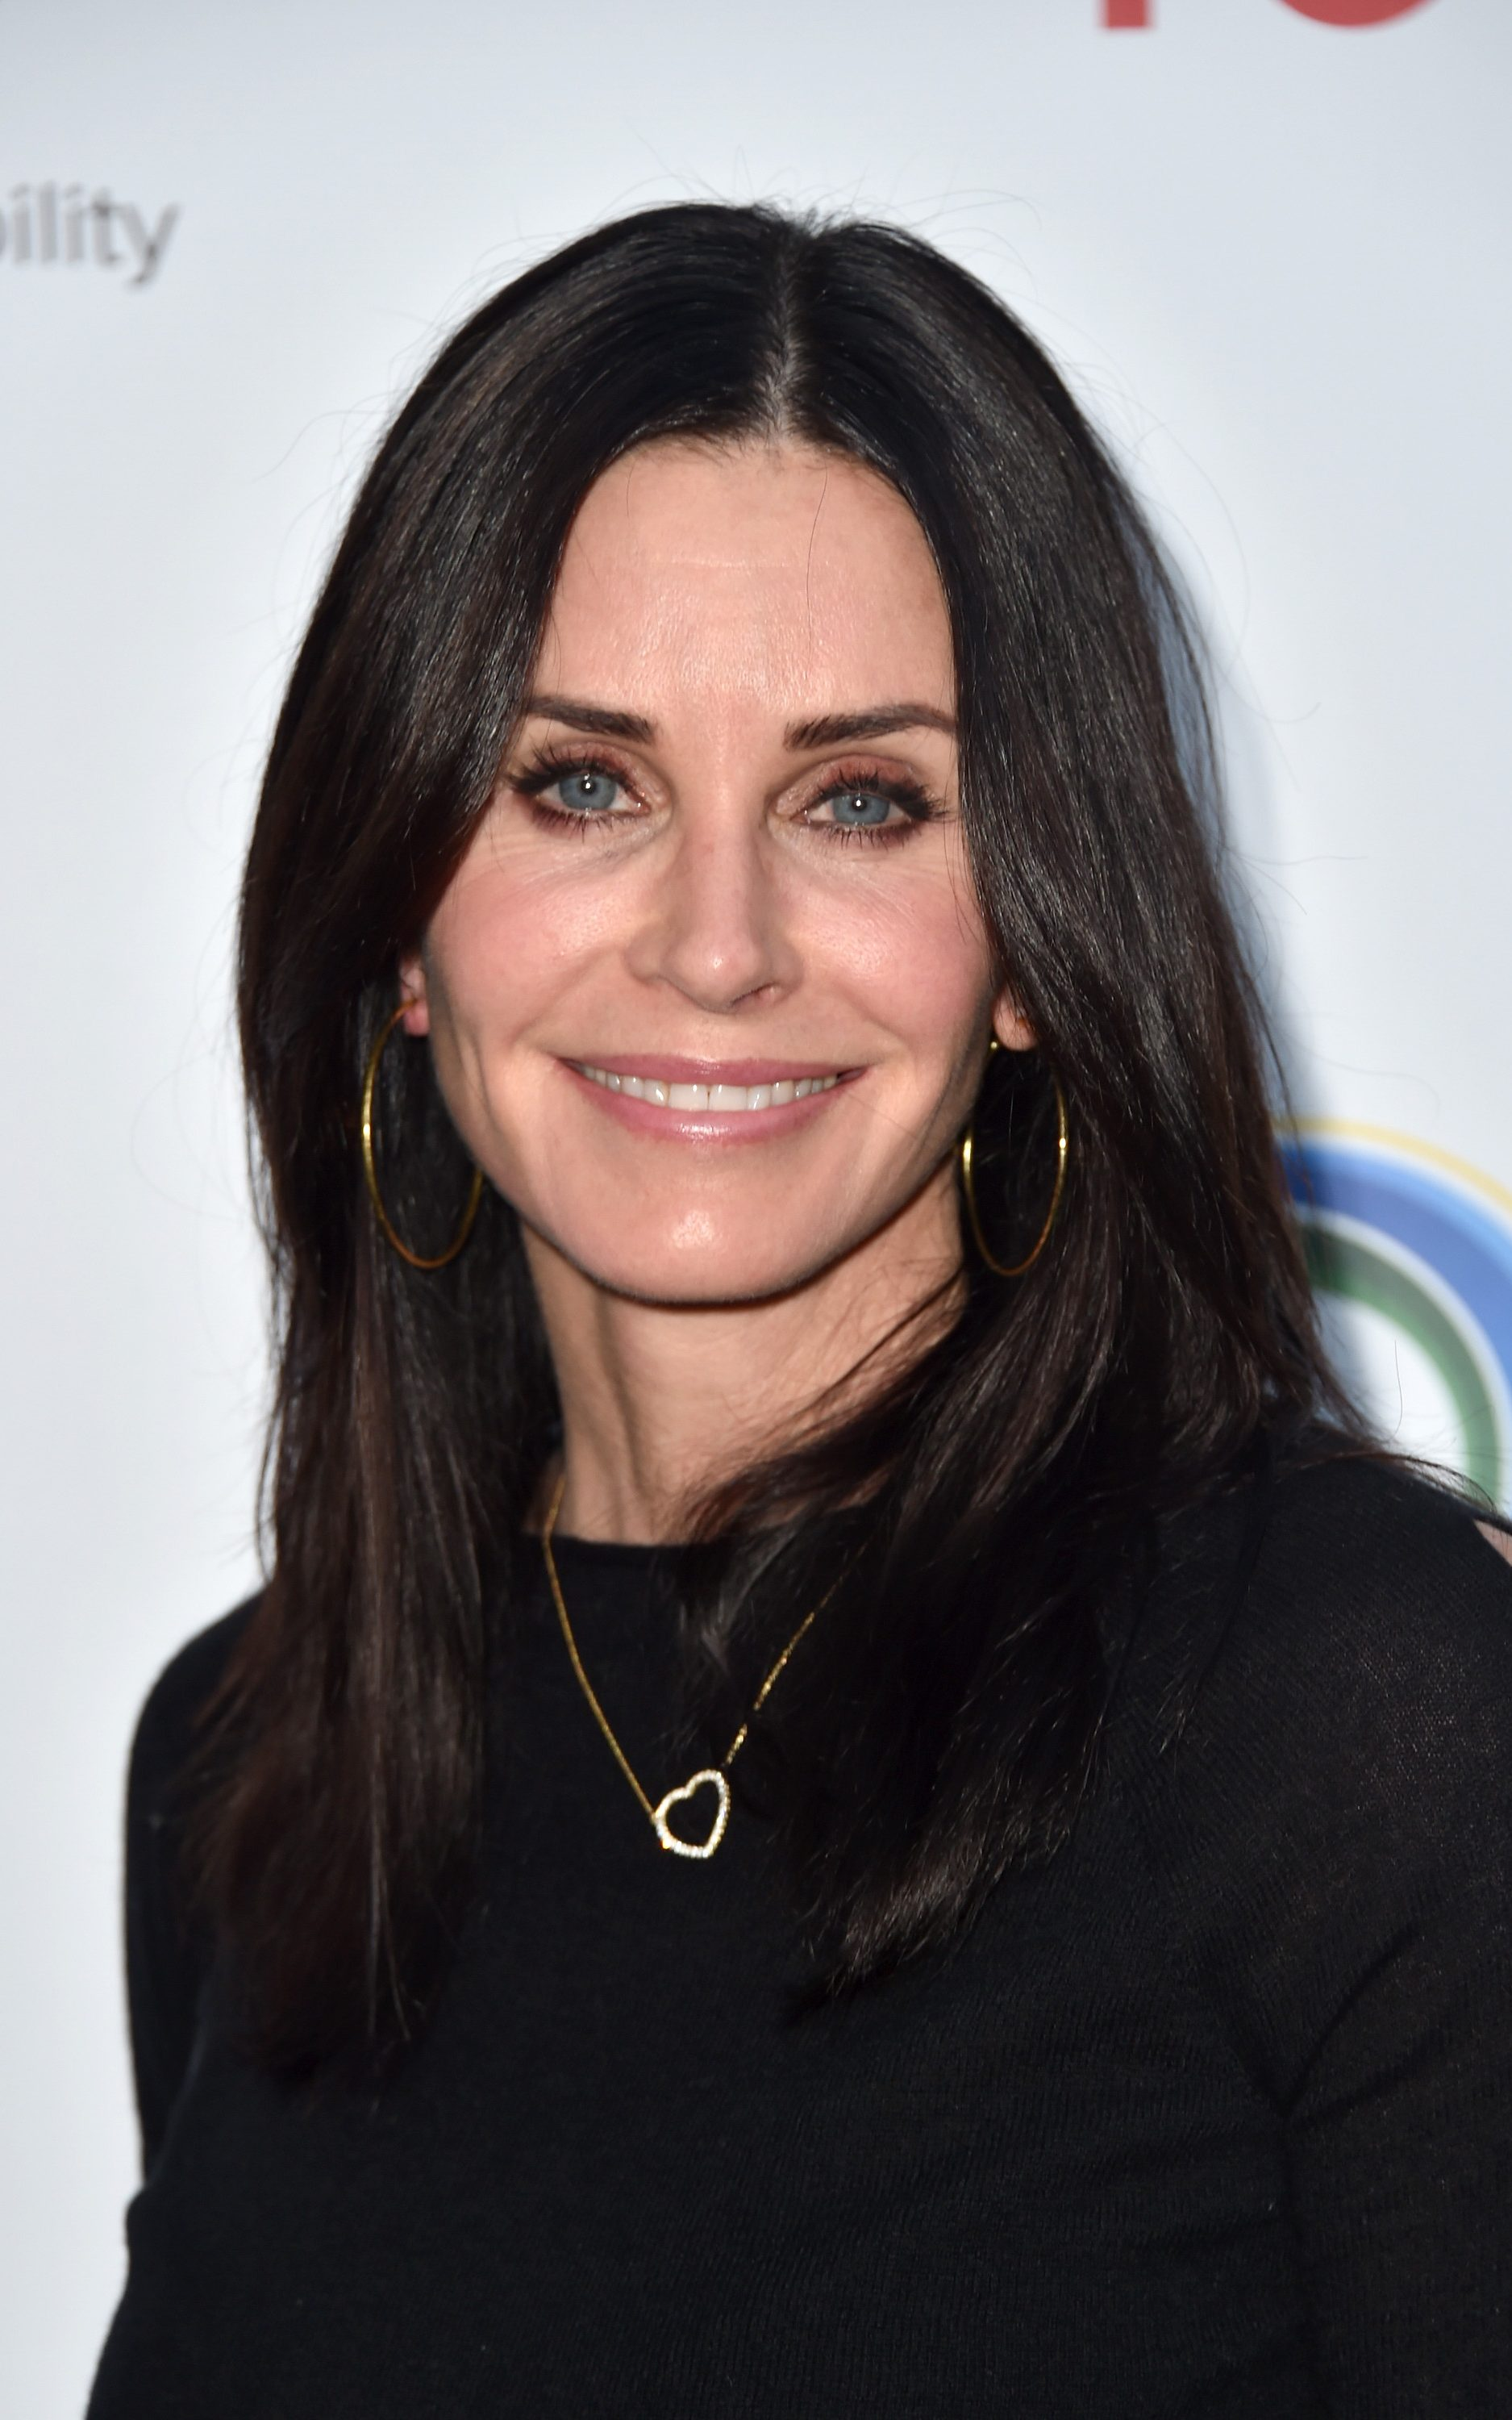 Courteney Cox Has Admitted To It But How Painful Is